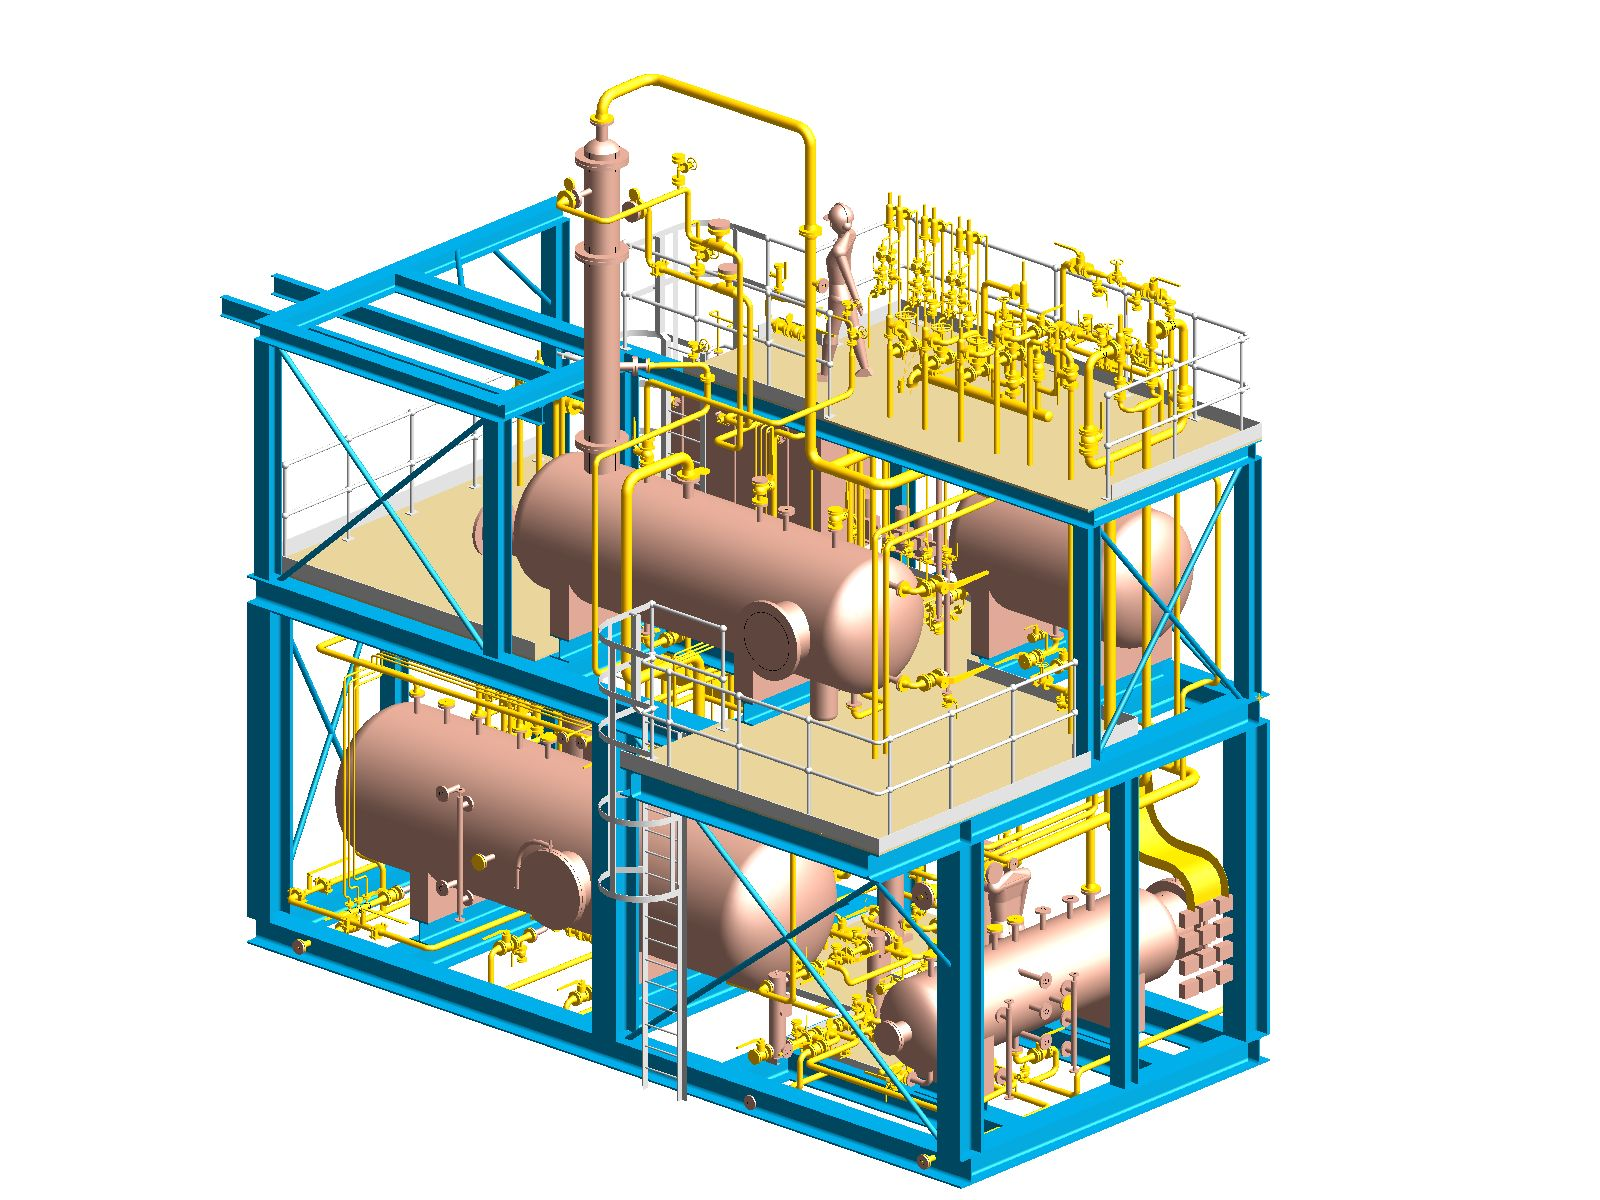 Escher Process Modules commissioned to supply Triethylene Glycol Regeneration Package